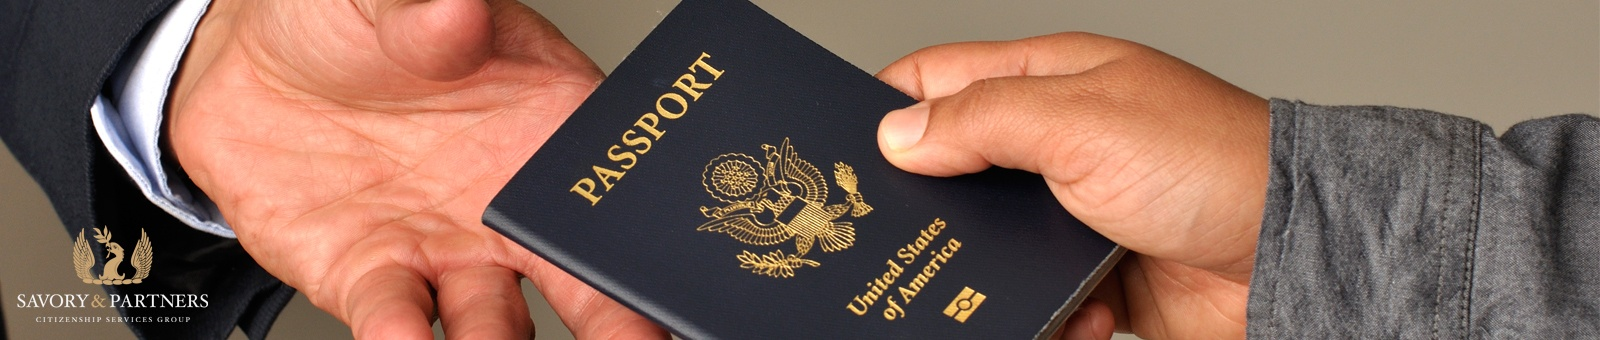 Is someone offering you a fake passport?